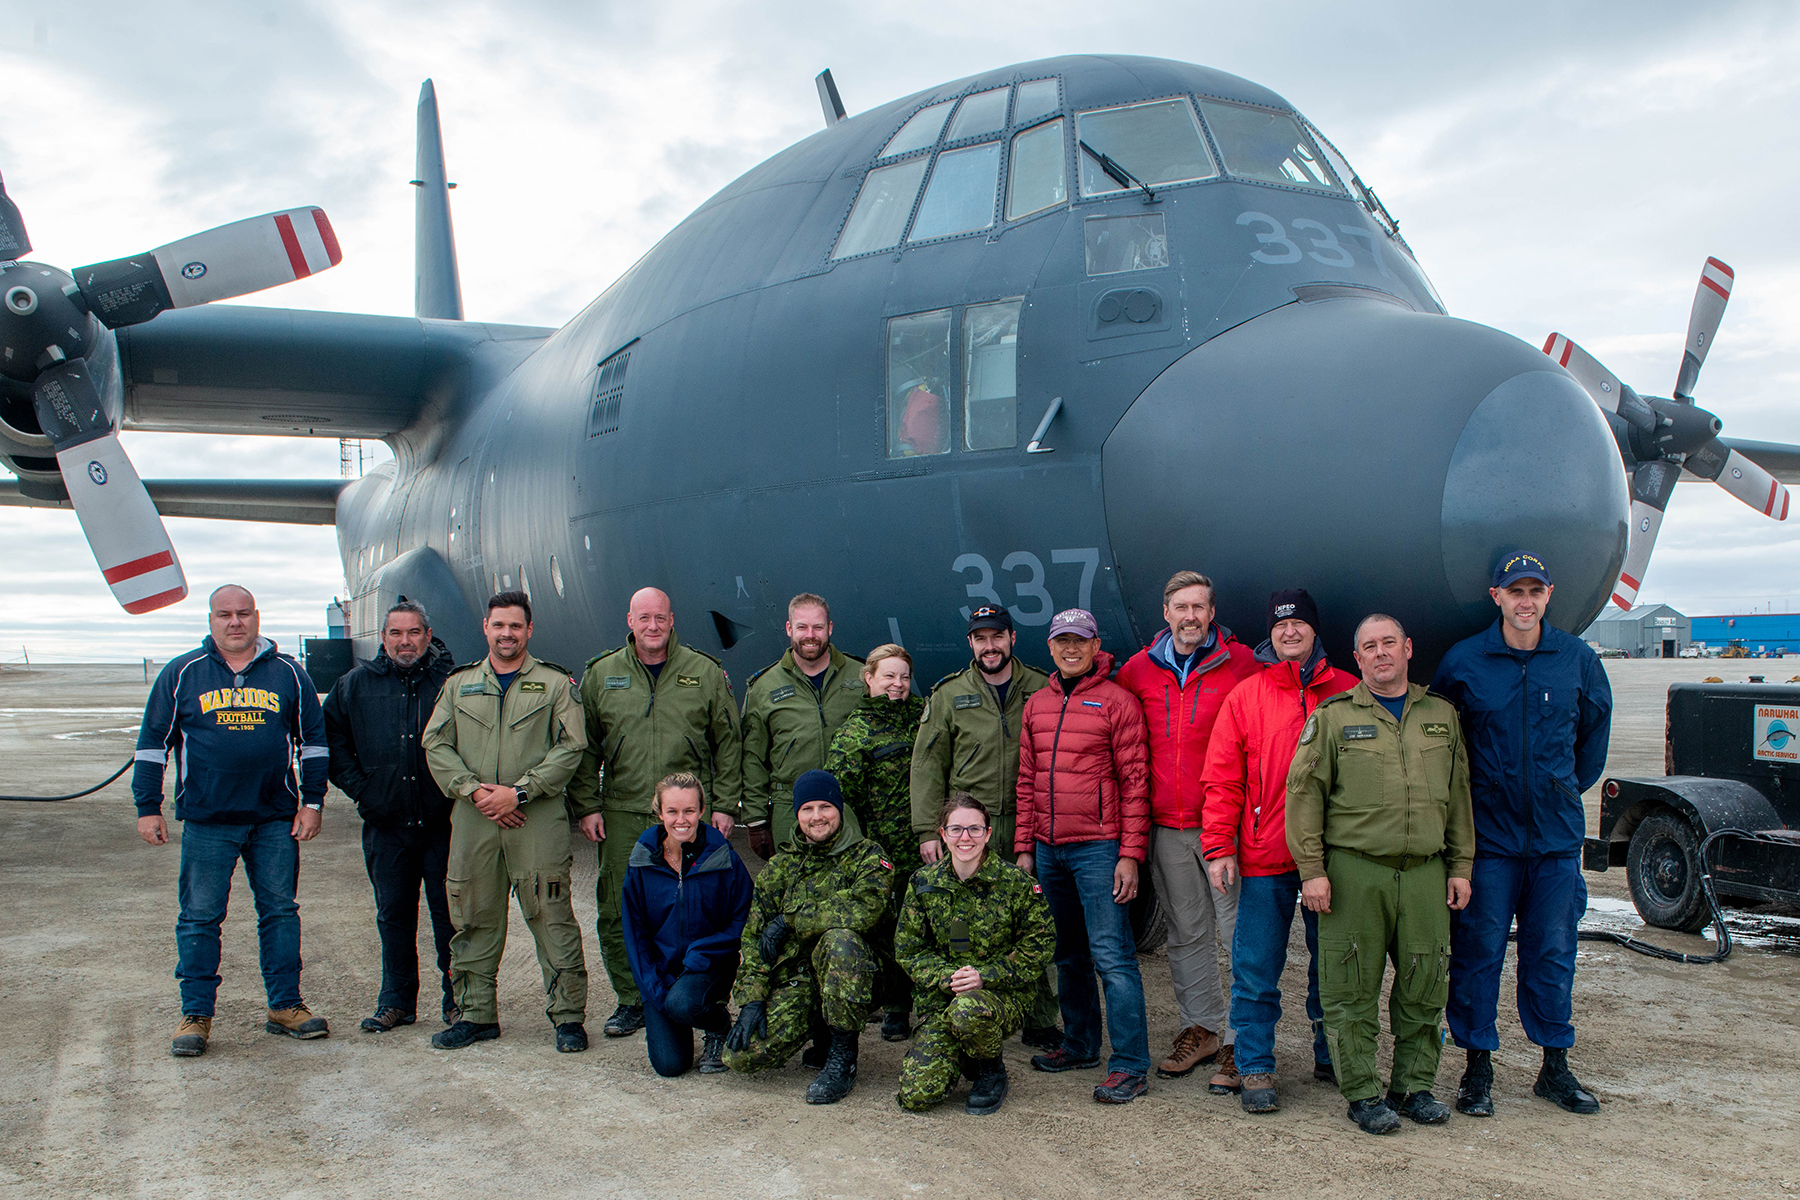 2019 Arctic Buoy drop mission team members, comprising RCAF aircrew and seven civilians gather for a photo with their ride, a CC-130 Hercules aircraft. Front row, from left: US Navy Midshipman Annie Shea; Technician Corporal J.F. Paradis; and Second Lieutenant Danielle Beland. Back row, from left: Shawn Morissette (Defence Research Development Canada/DND; Rich DeVall (Environment and Climate Change Canada); Loadmaster Master Corporal Marc Lapensee; Flight Engineer Warrant Officer Mike Mar; First Officer Captain Jeff LaBrash; Navigator Captain Sarah Fralick; Captain Tristan Dobson; Ignatius Rigor (University of Washington); Vaughn Cosman (Defence Research Development Canada/DND); Jim Johnson (University of Washington); Loadmaster Corporal Joe Gervais; and Lieutenant Junior Grade Bryan Brasher (US National Oceanic and Atmospheric Administration). PHOTO: Ignatius Rigor